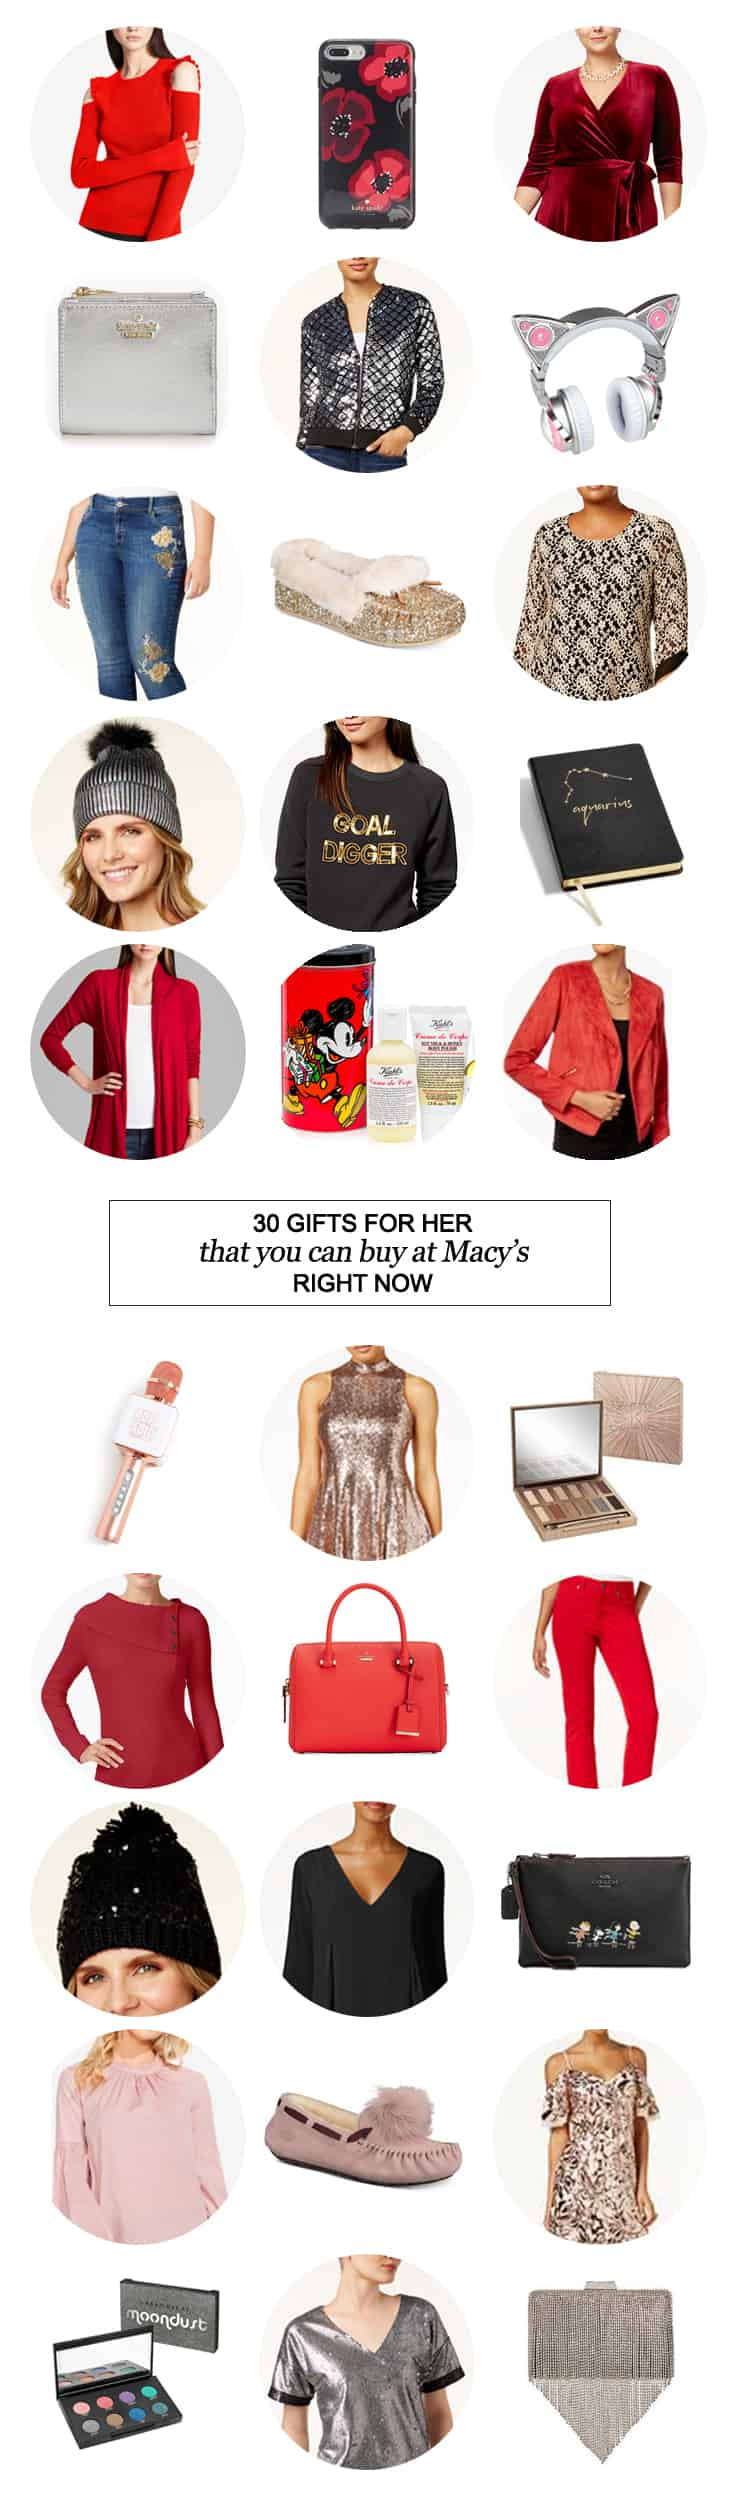 30 Gifts for Her that you can Buy at @Macys Right Now #shopping #holidays #Christmas #women #beauty #fashion #Christmasshopping #teenager